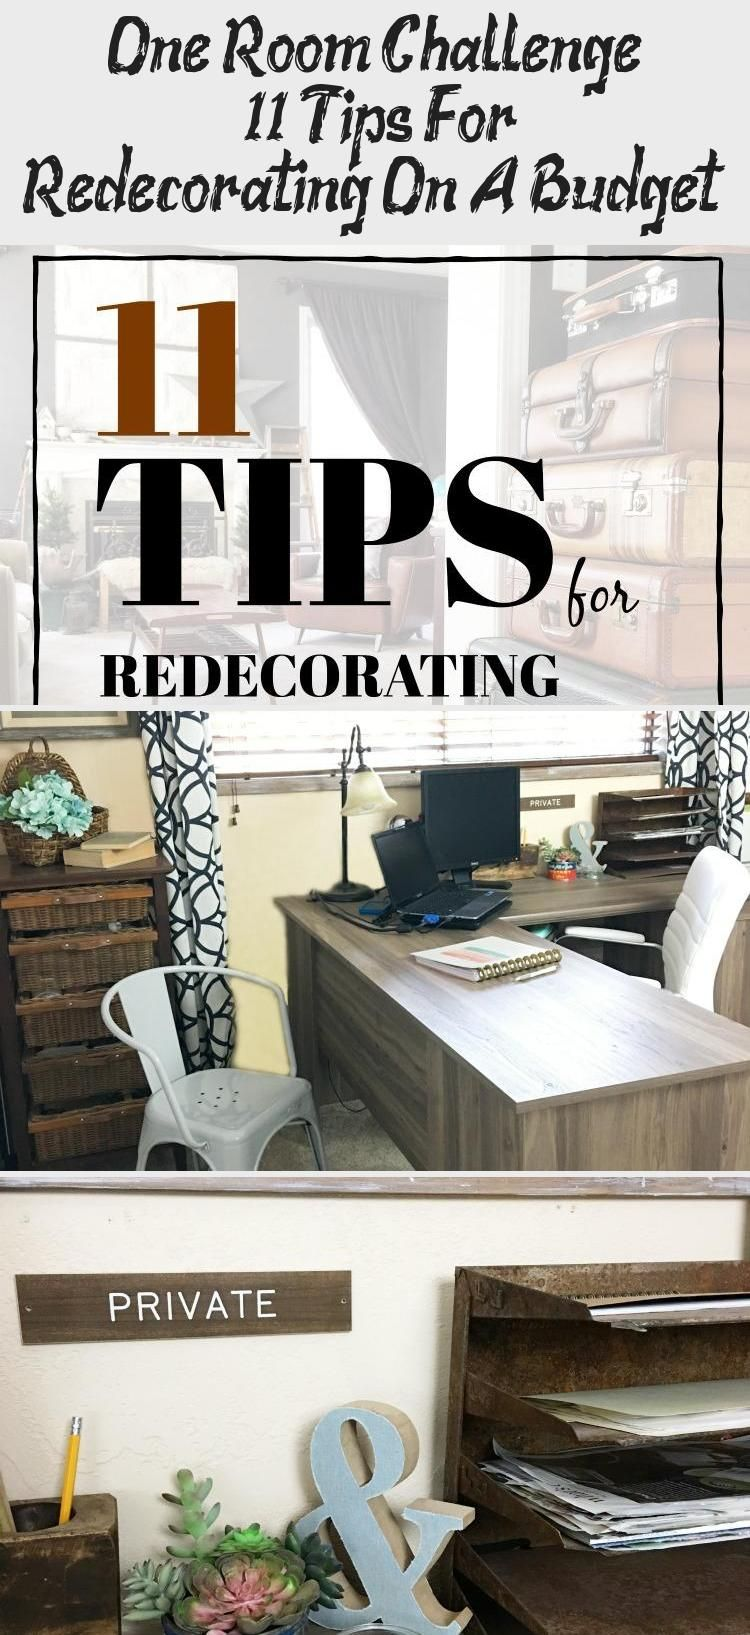 How to redecorate on a budget.  Here are some tips.  Find more on salvagesisterandmister.com #HomeDecorDIYVideosCheap #HomeDecorDIYVideosIdeas #HomeDecorDIYVideosProjects #HomeDecorDIYVideosApartment #HomeDecorDIYVideosLivingRoom